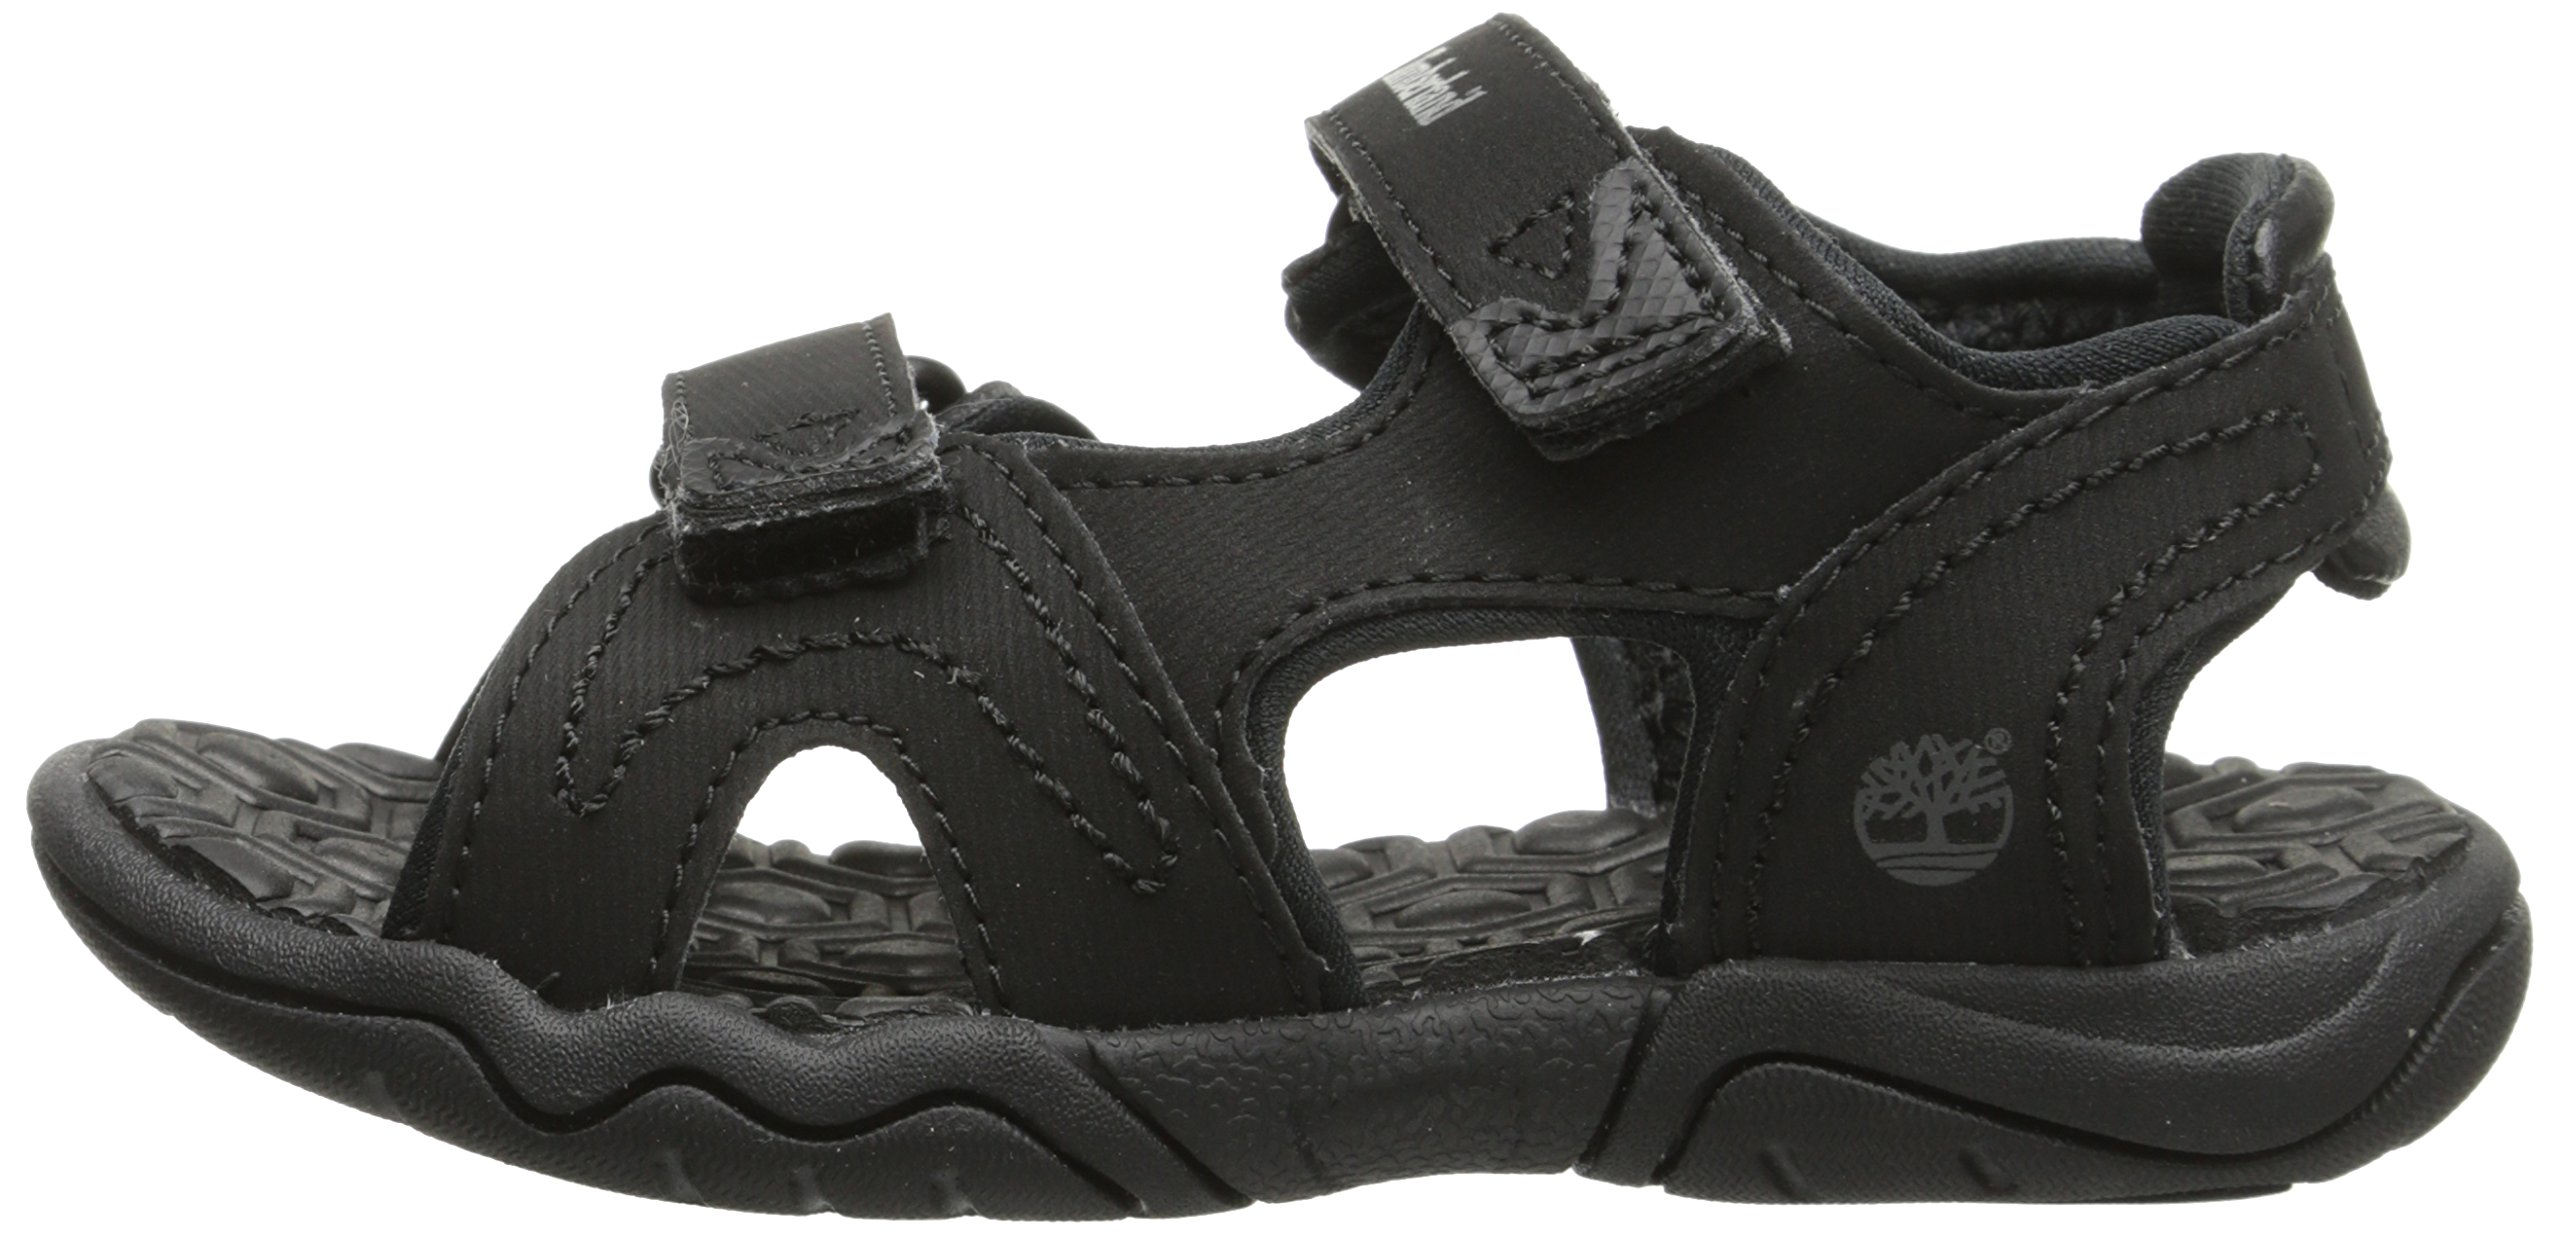 Timberland Adventure Seeker Two-Strap Sandal (Toddler/Little Kid),Blackout,9 M US Toddler by Timberland (Image #5)